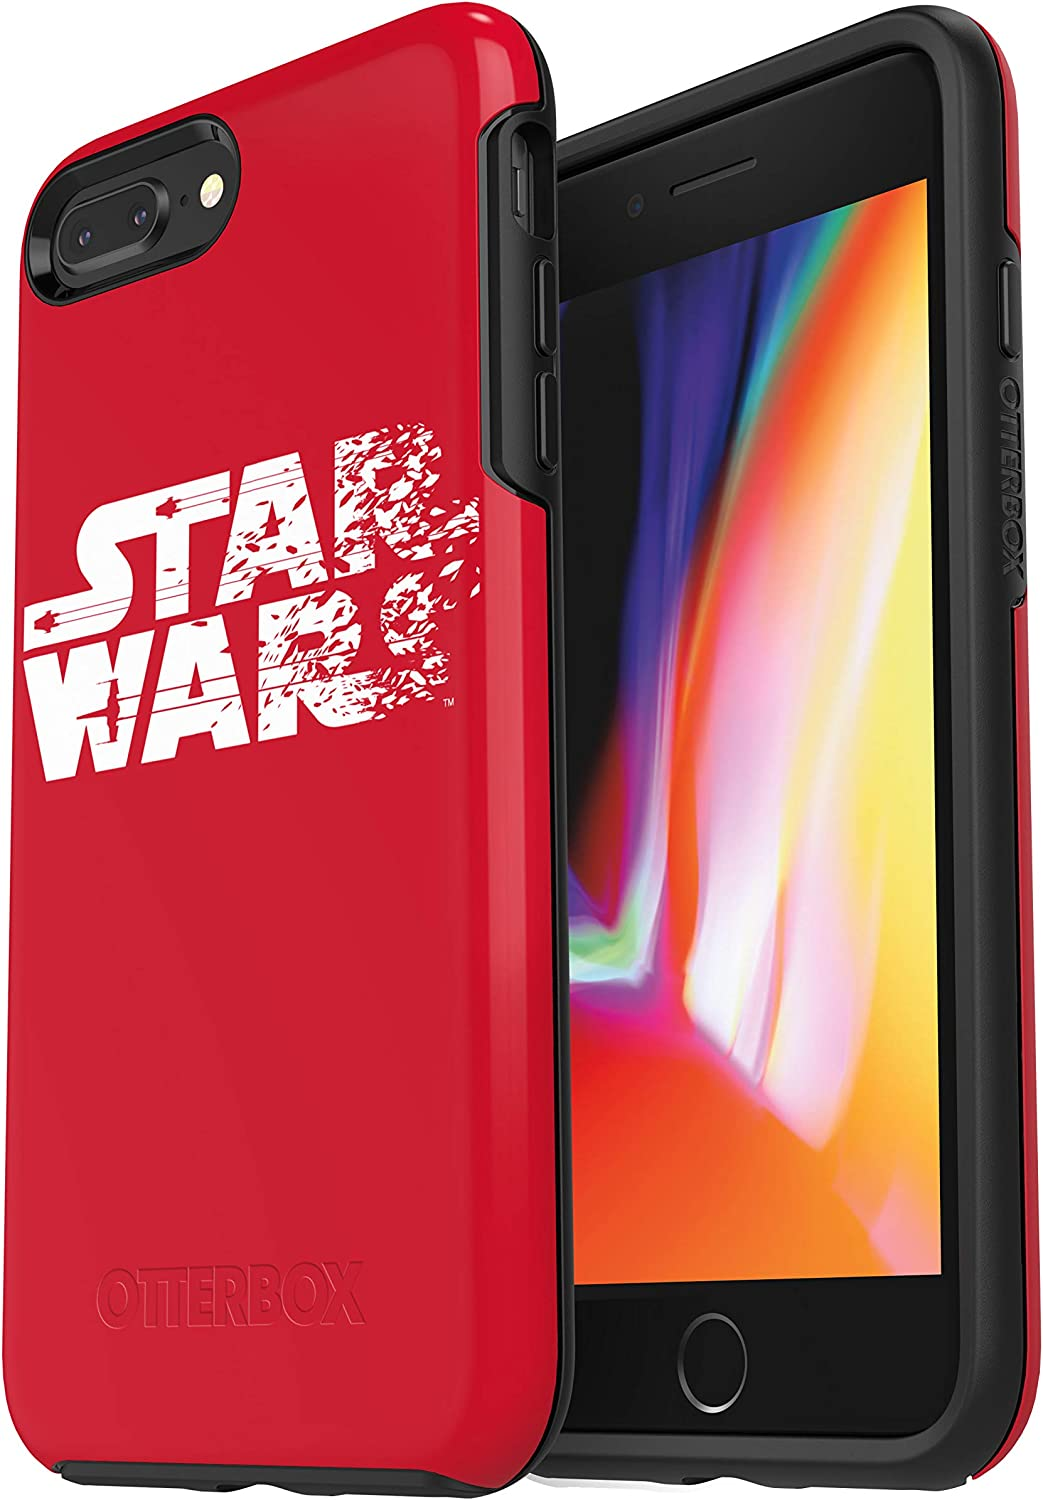 OtterBox SYMMETRY SERIES STAR WARS Case for iPhone 8 PLUS & iPhone 7 PLUS (ONLY) Resistance Red